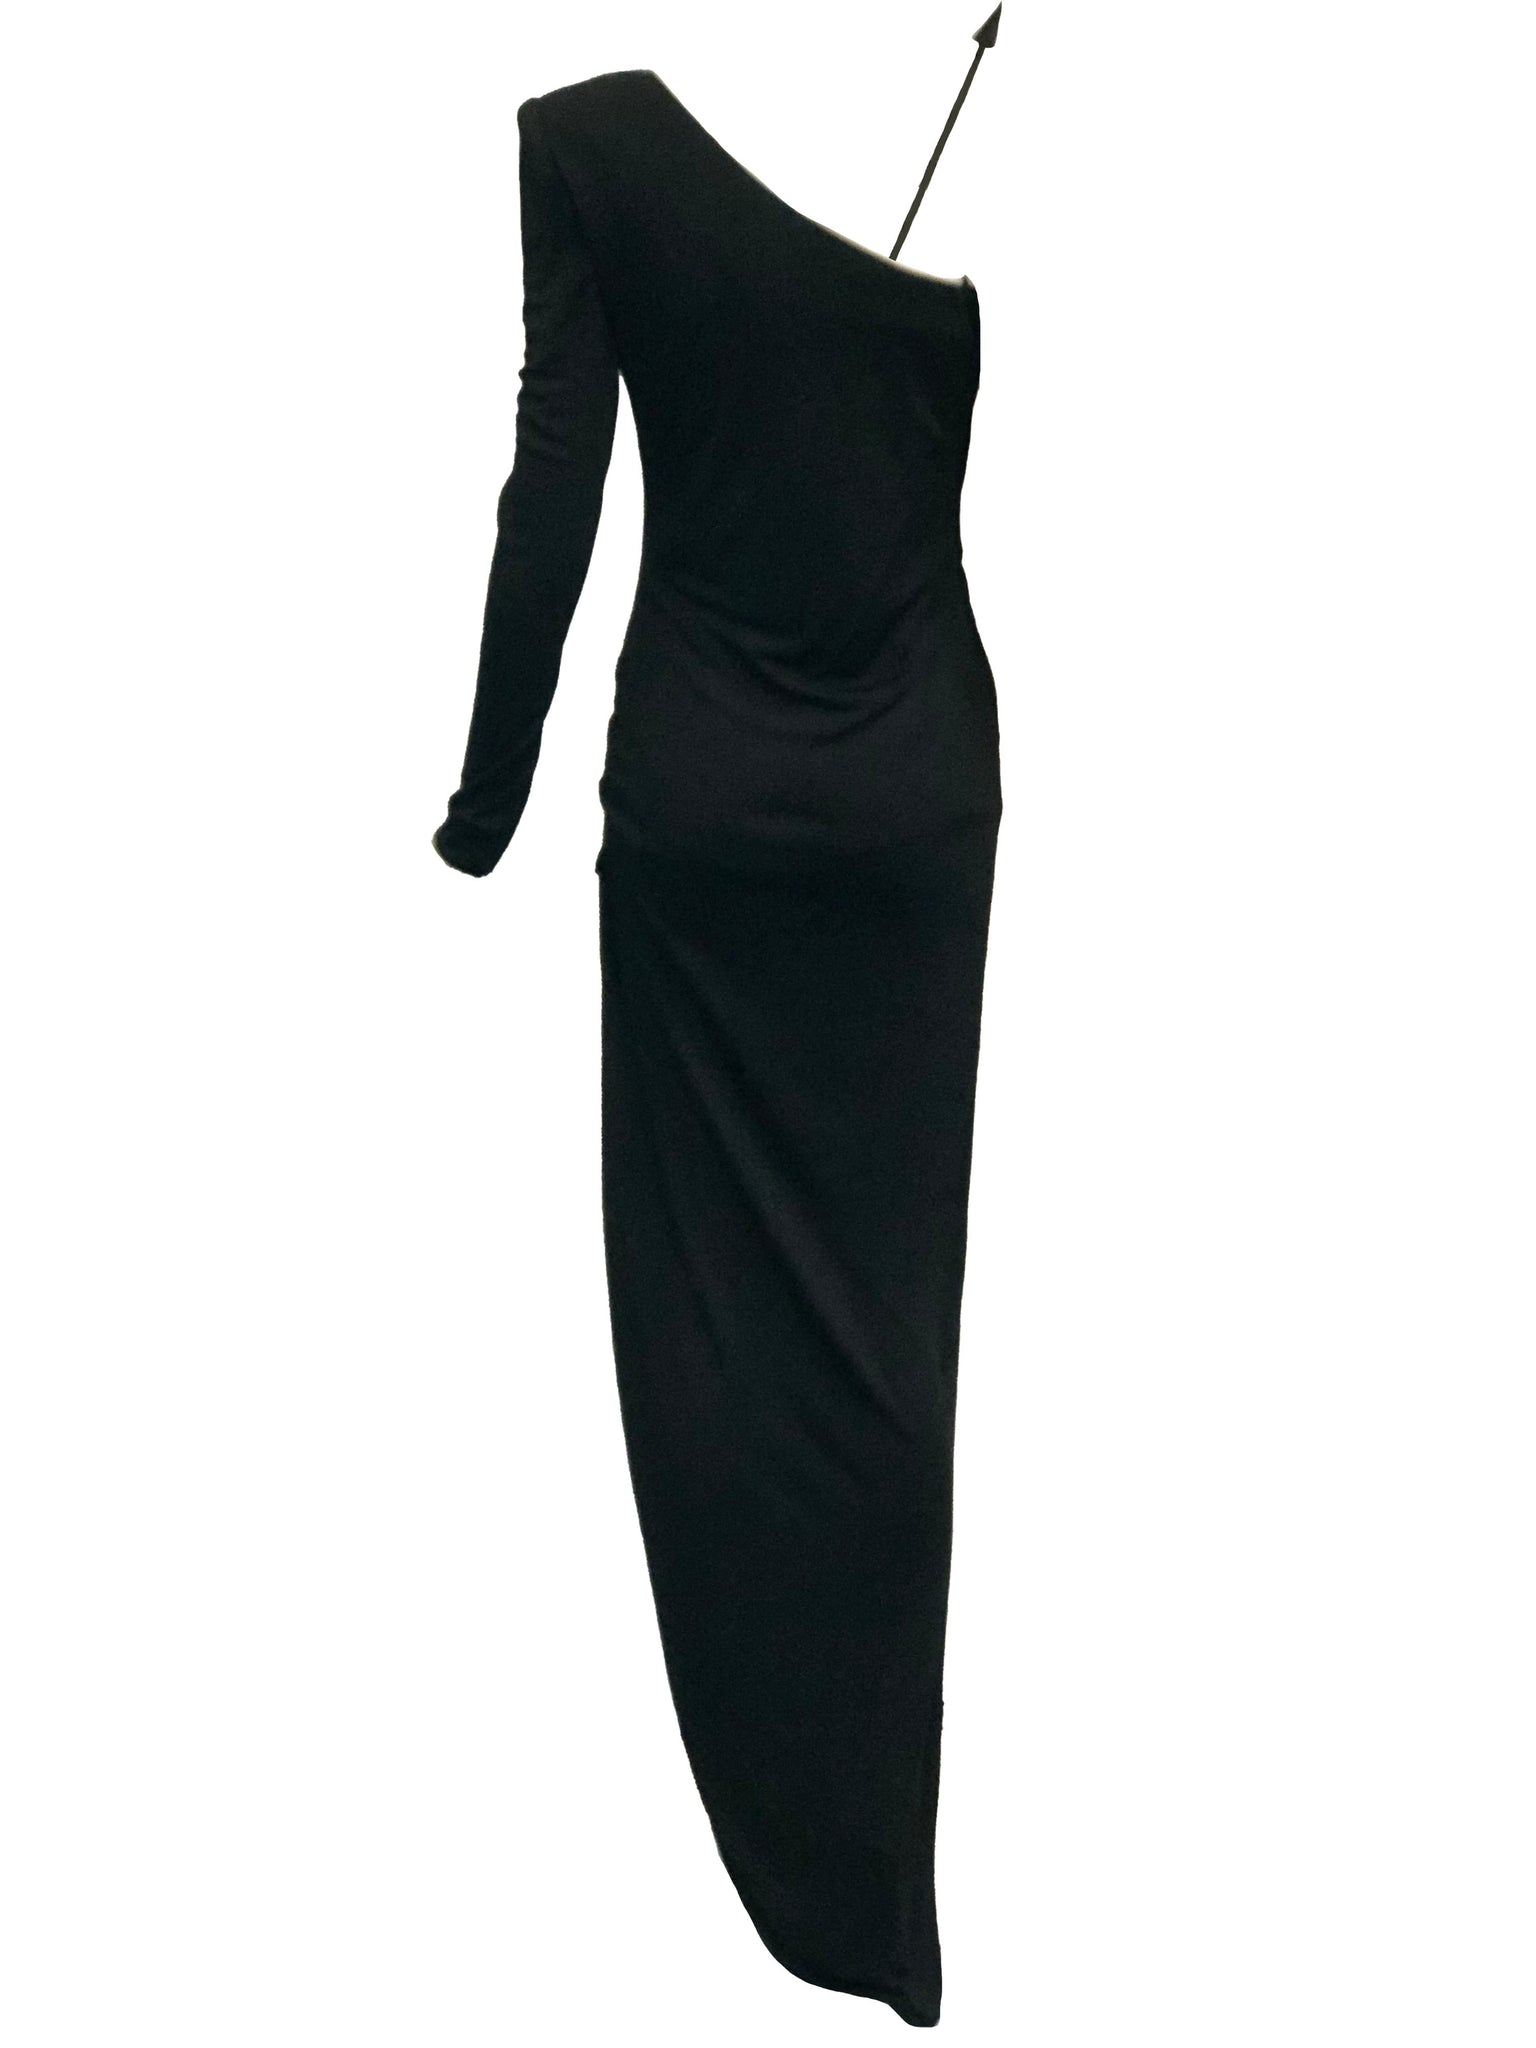 Valentino 70s Black Jersey Rhinestone Arrow Gown BACK 3 of 8